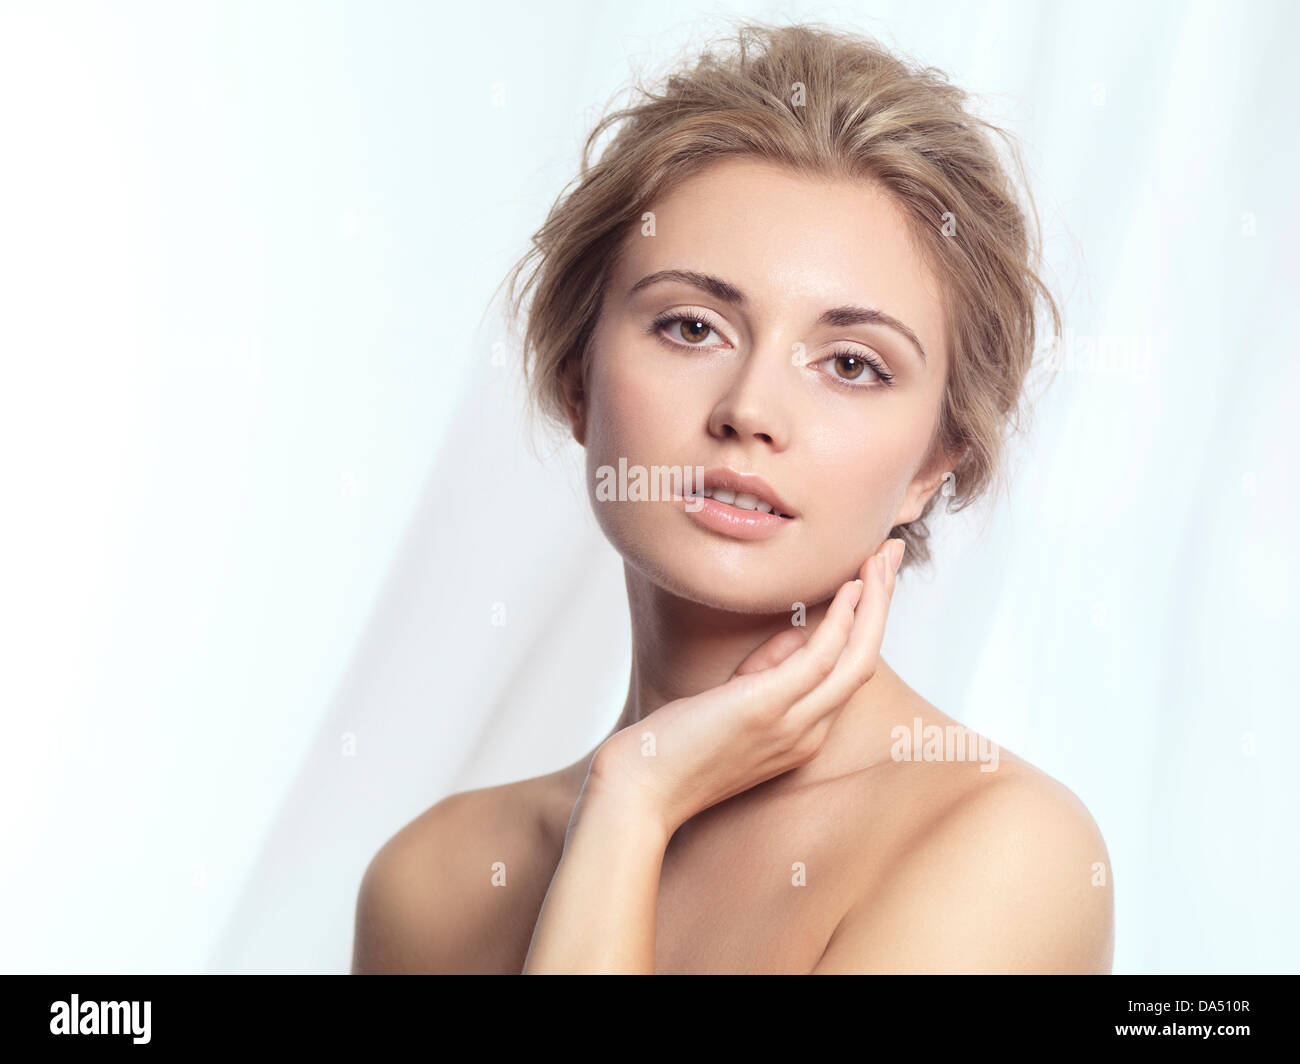 Beauty portrait of a young woman relaxed face with natural clean makeup and contemporary hairstyle over white flowy - Stock Image